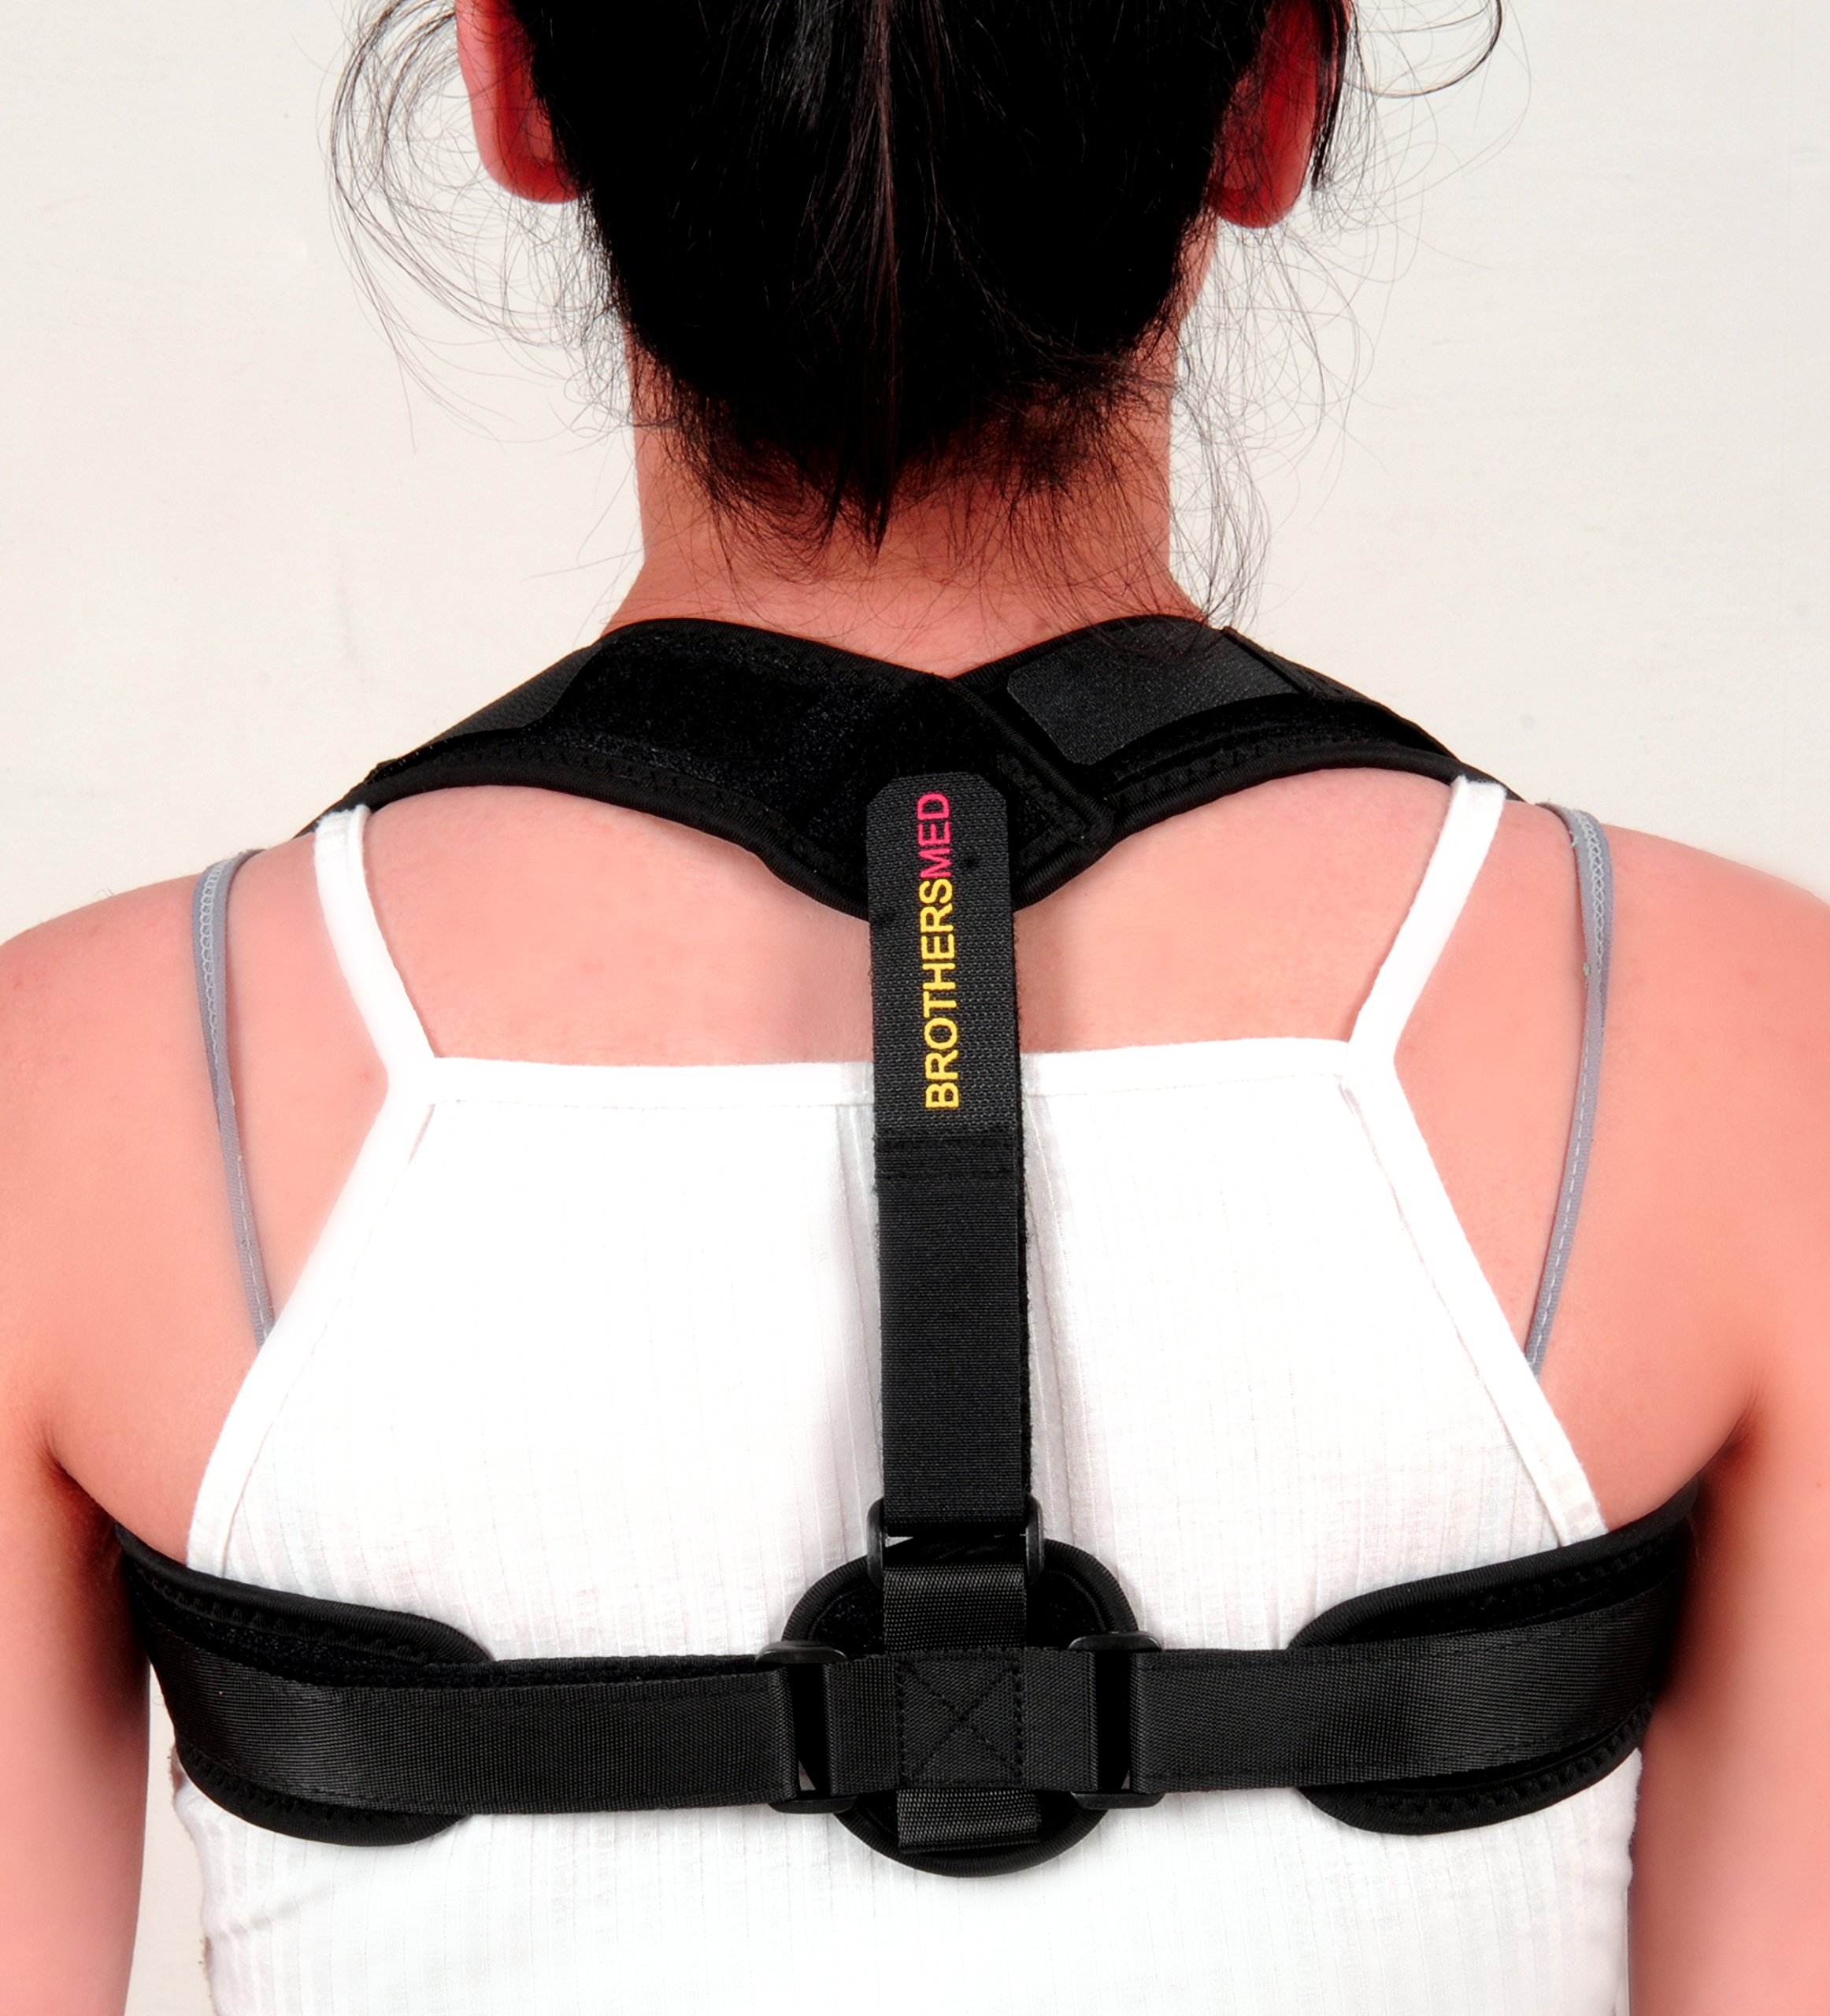 Posture Corrector for Women & Men, Orthopedic Back Support,Fully Adjustable, Breathable and Comfortable Support Brace,Upper Back & Neck Pain Relief by Brothers (Image #1)